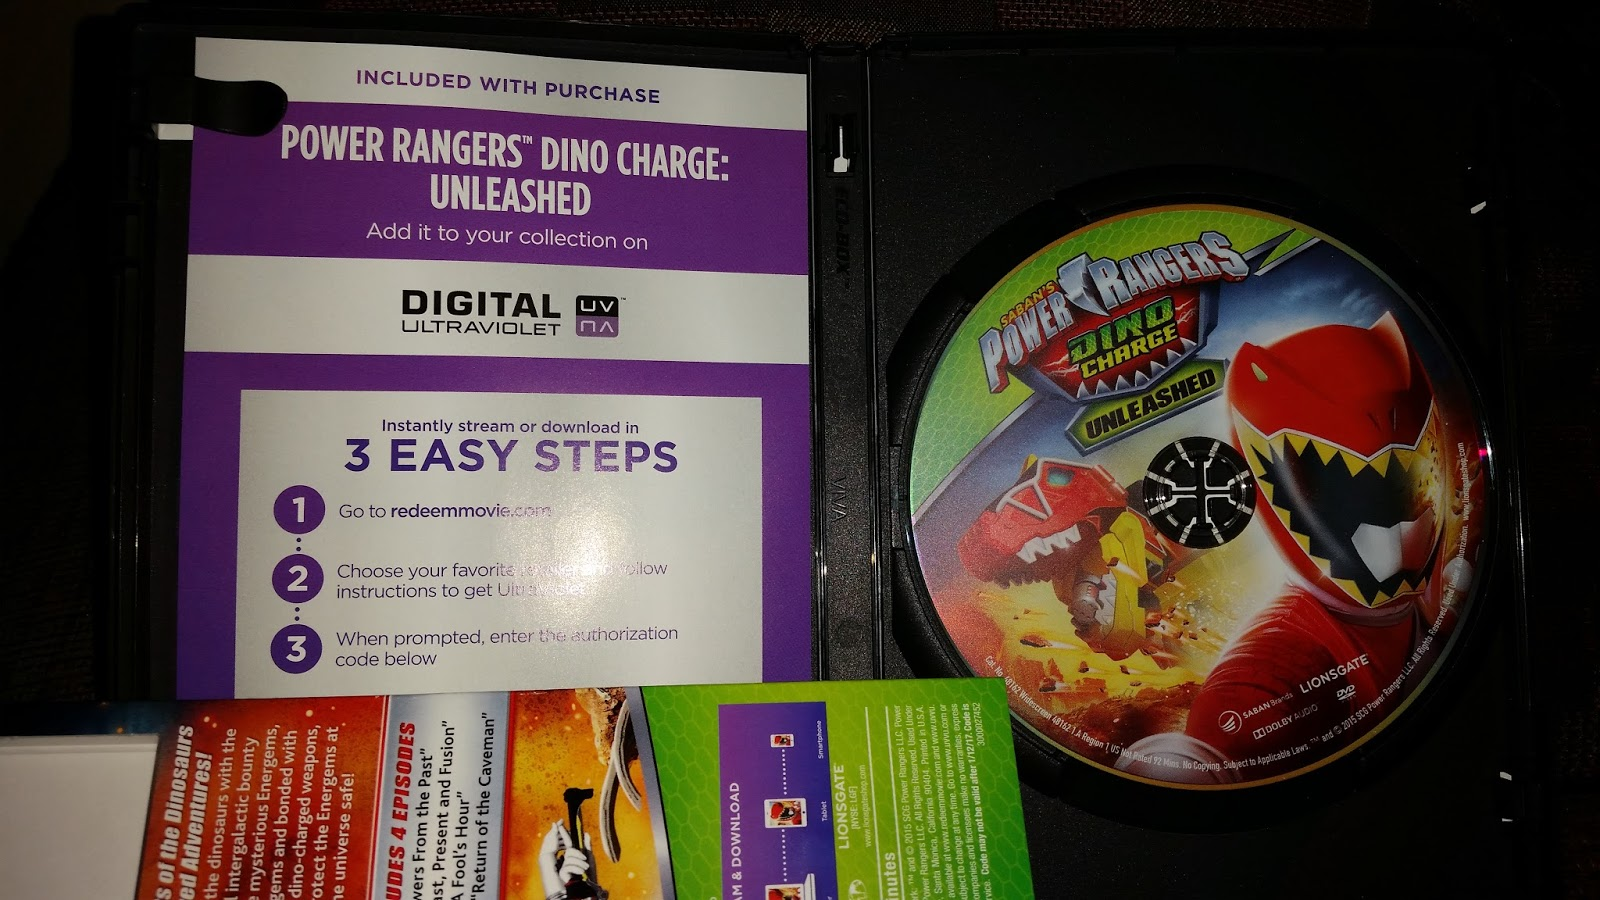 Get Intergalactic and Charged Up with POWER RANGERS DINO CHARGE